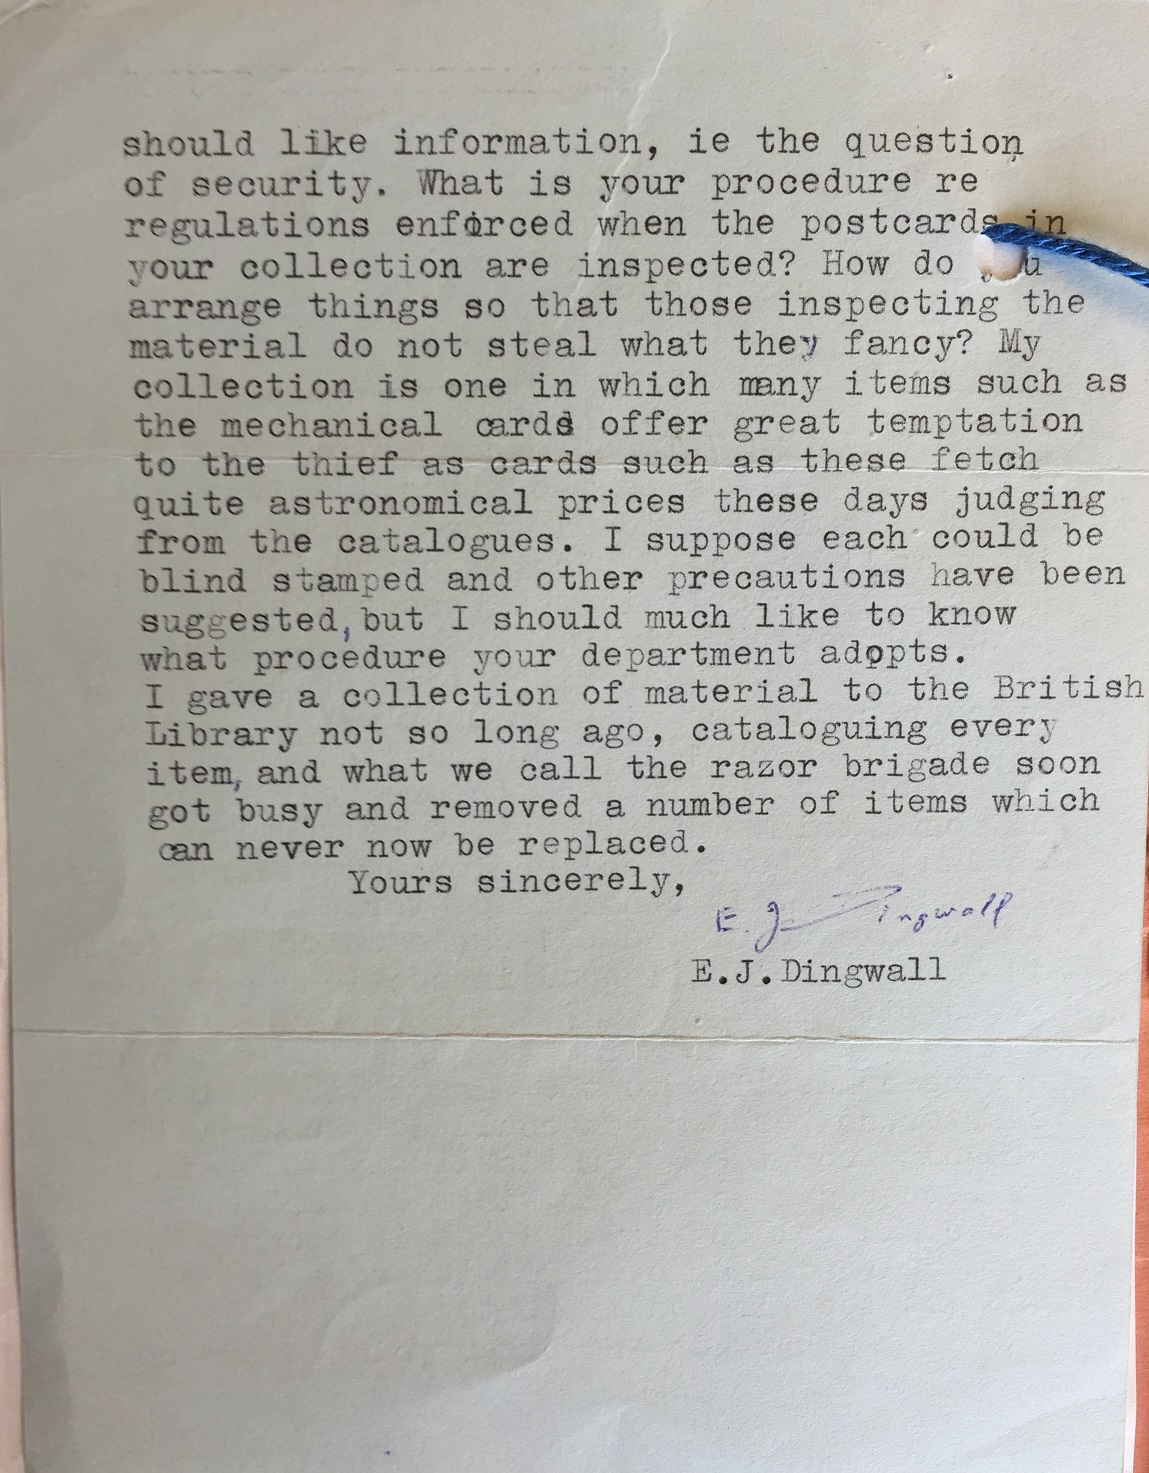 Letter from E.J. Dingwall to V&A, AAD: MA/1/D1182